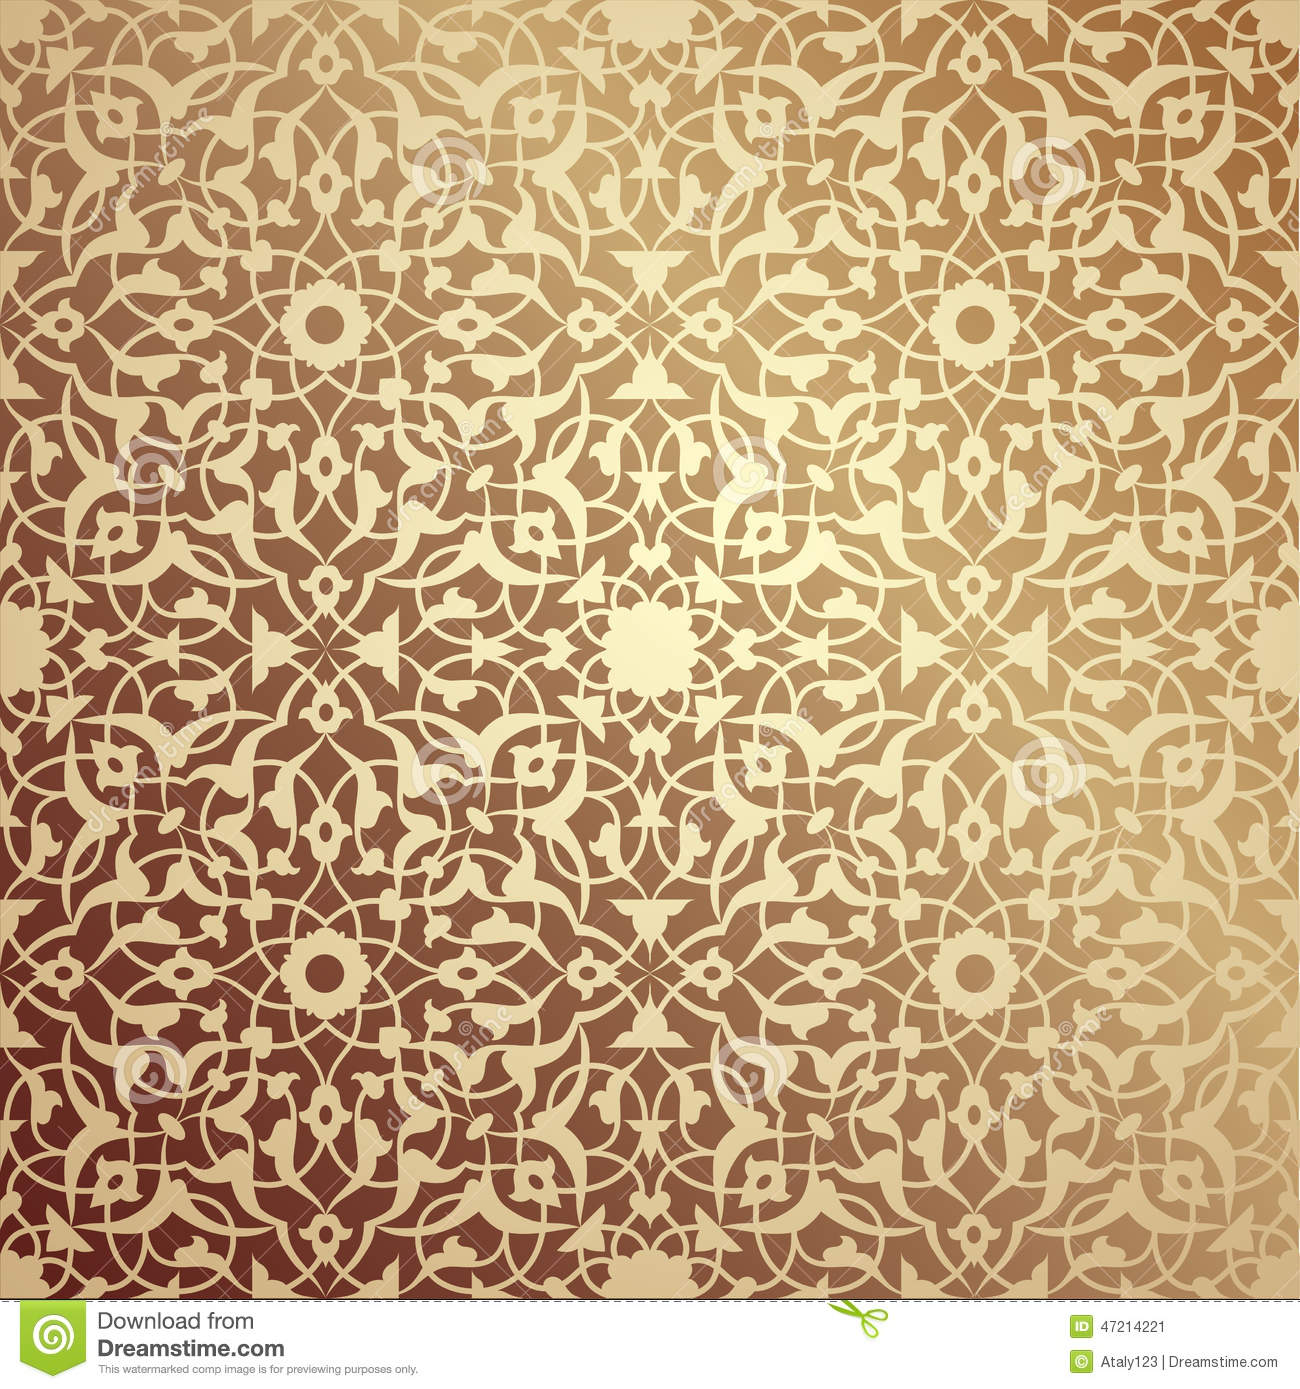 brown and gold geometric wallpaper